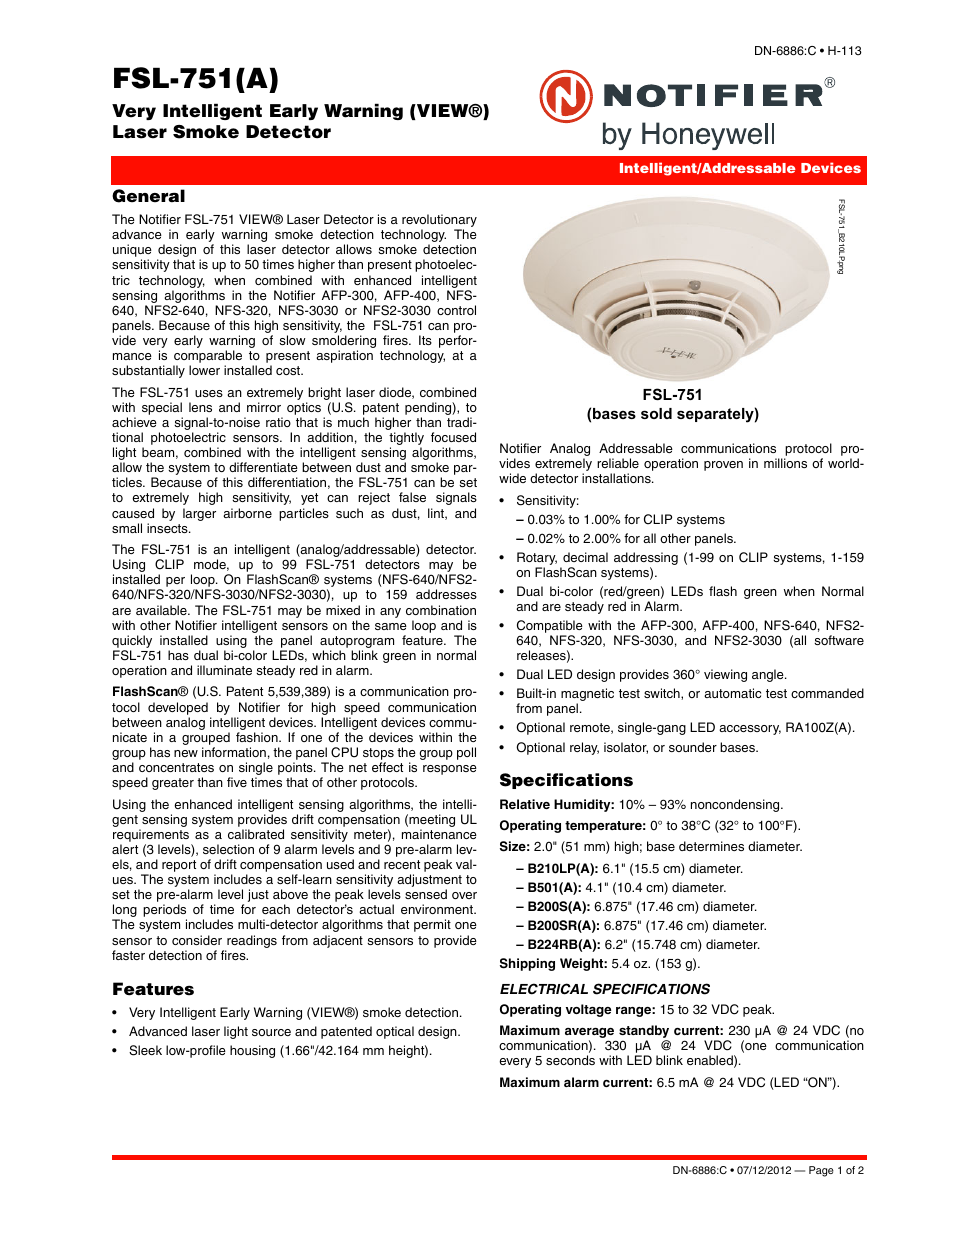 Notifier FSL-751 User Manual | 2 pages